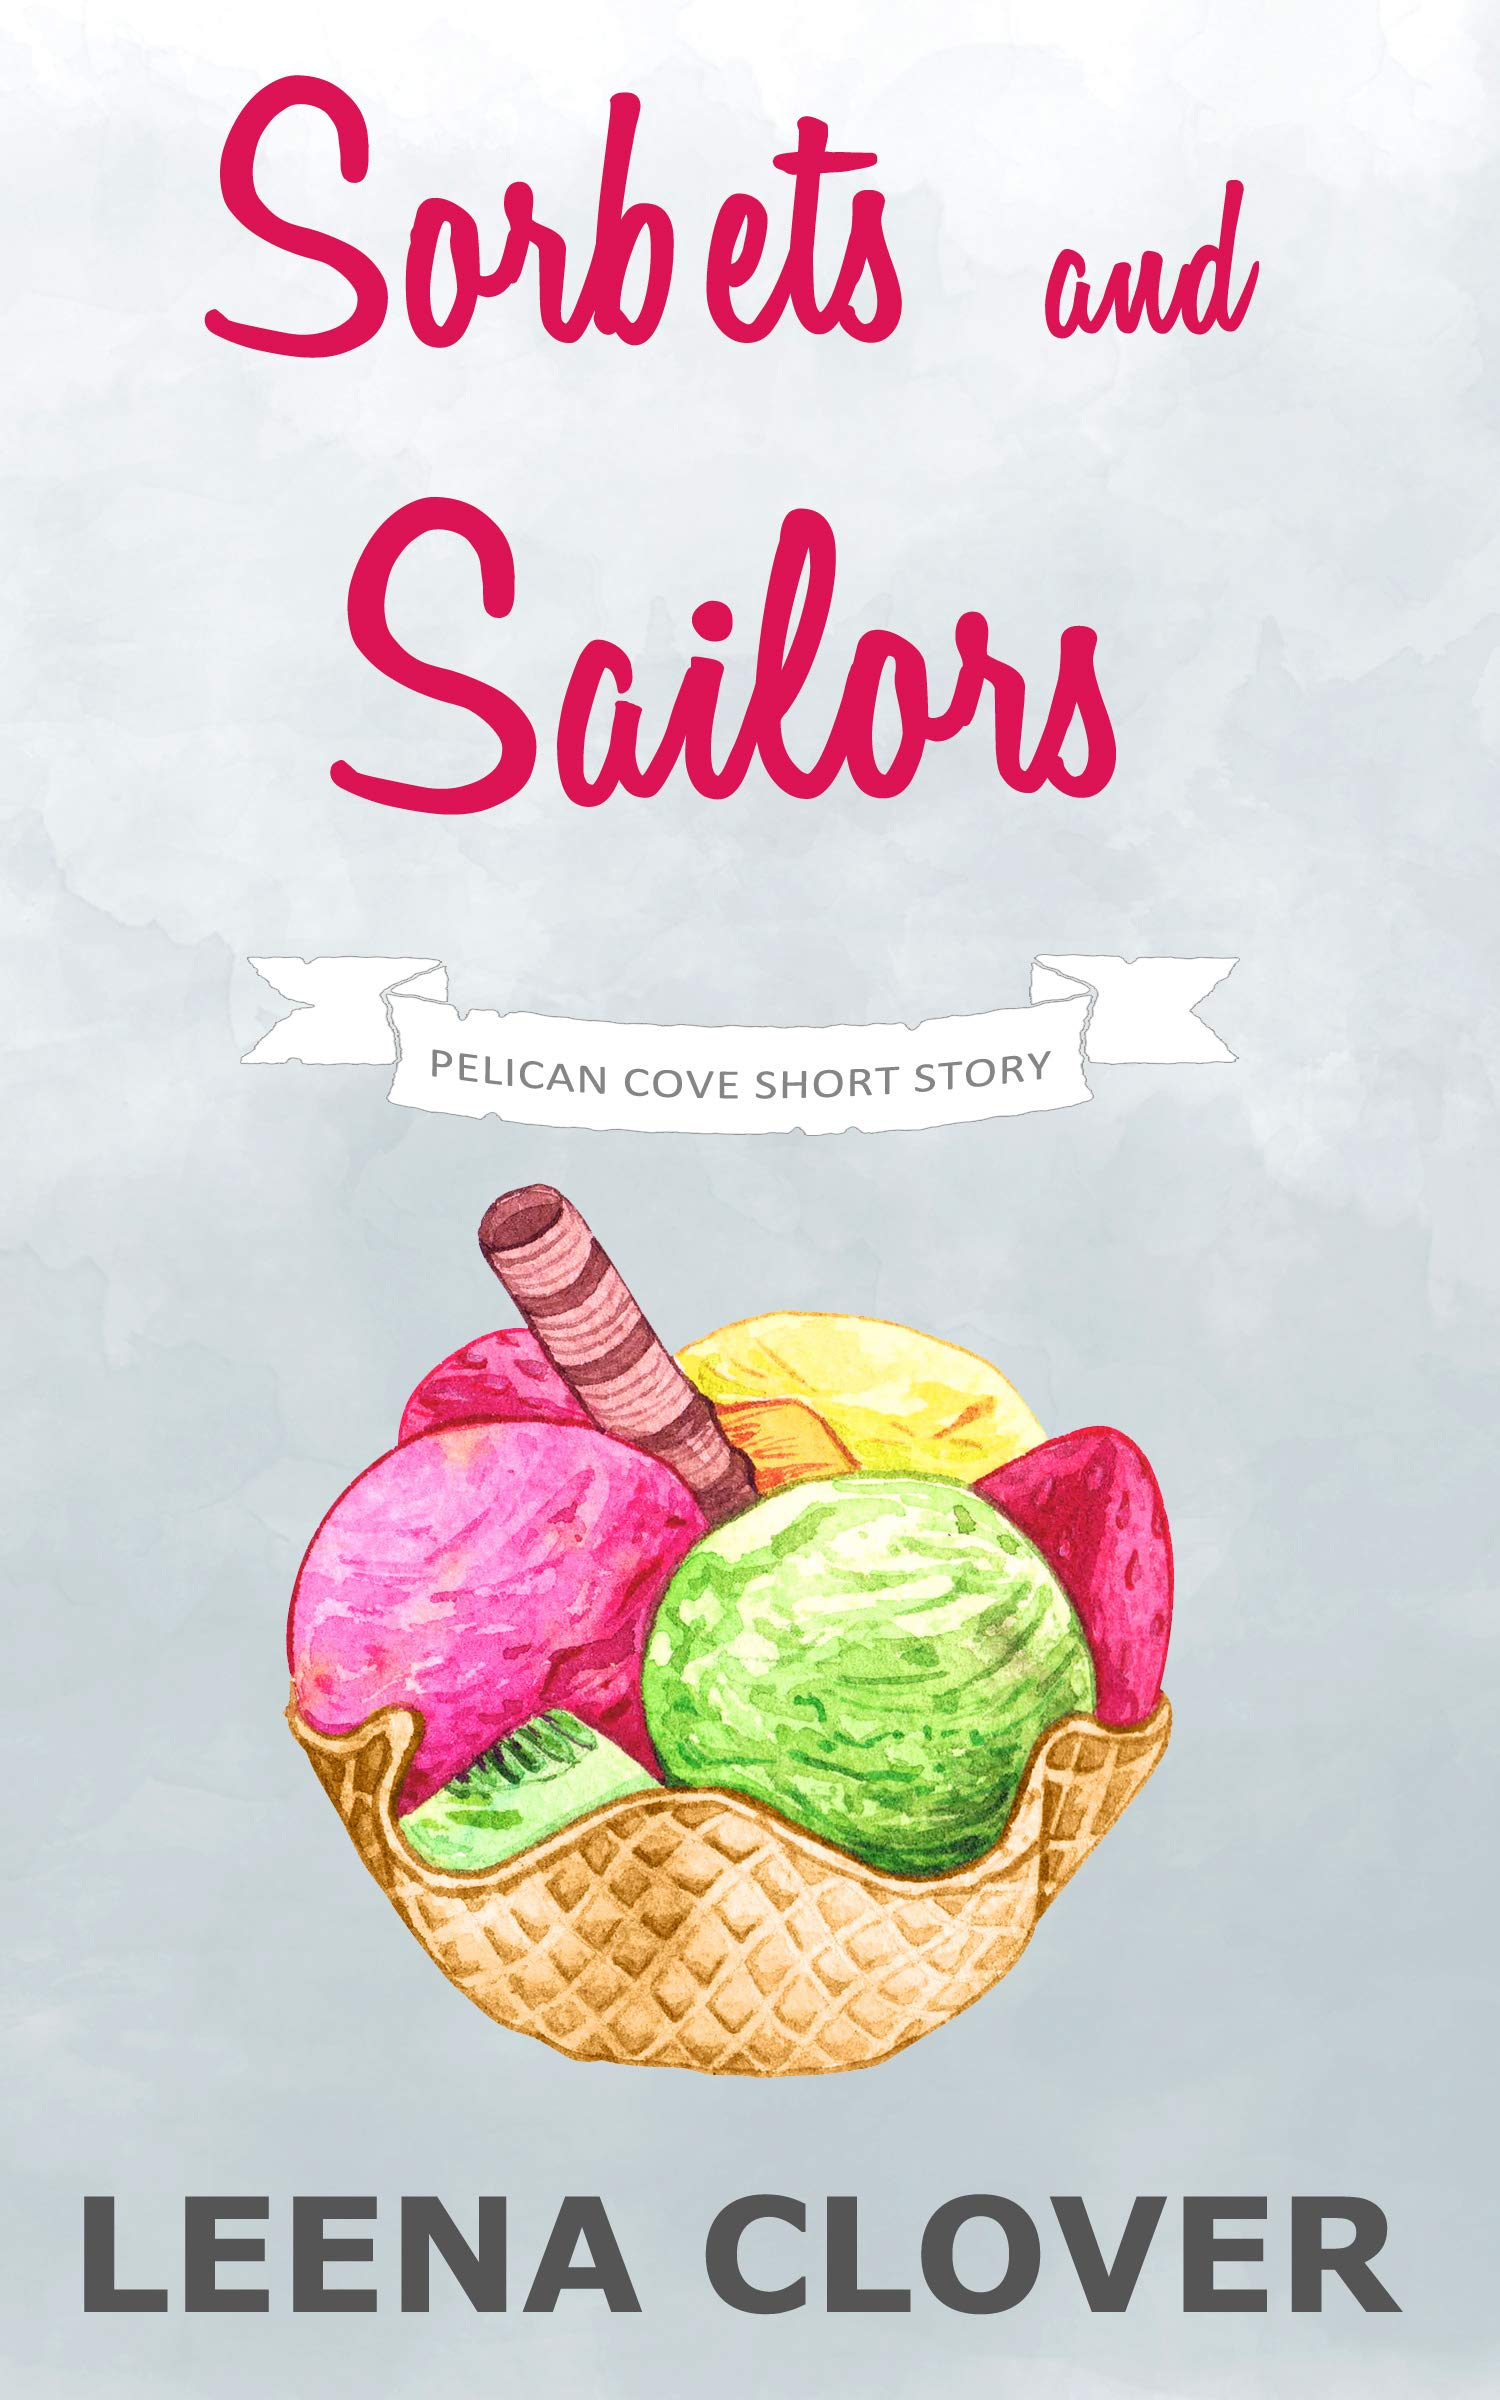 Sorbets and Sailors: A Pelican Cove Short Cozy Mystery (Pelican Cove Short Story Series Book 4)